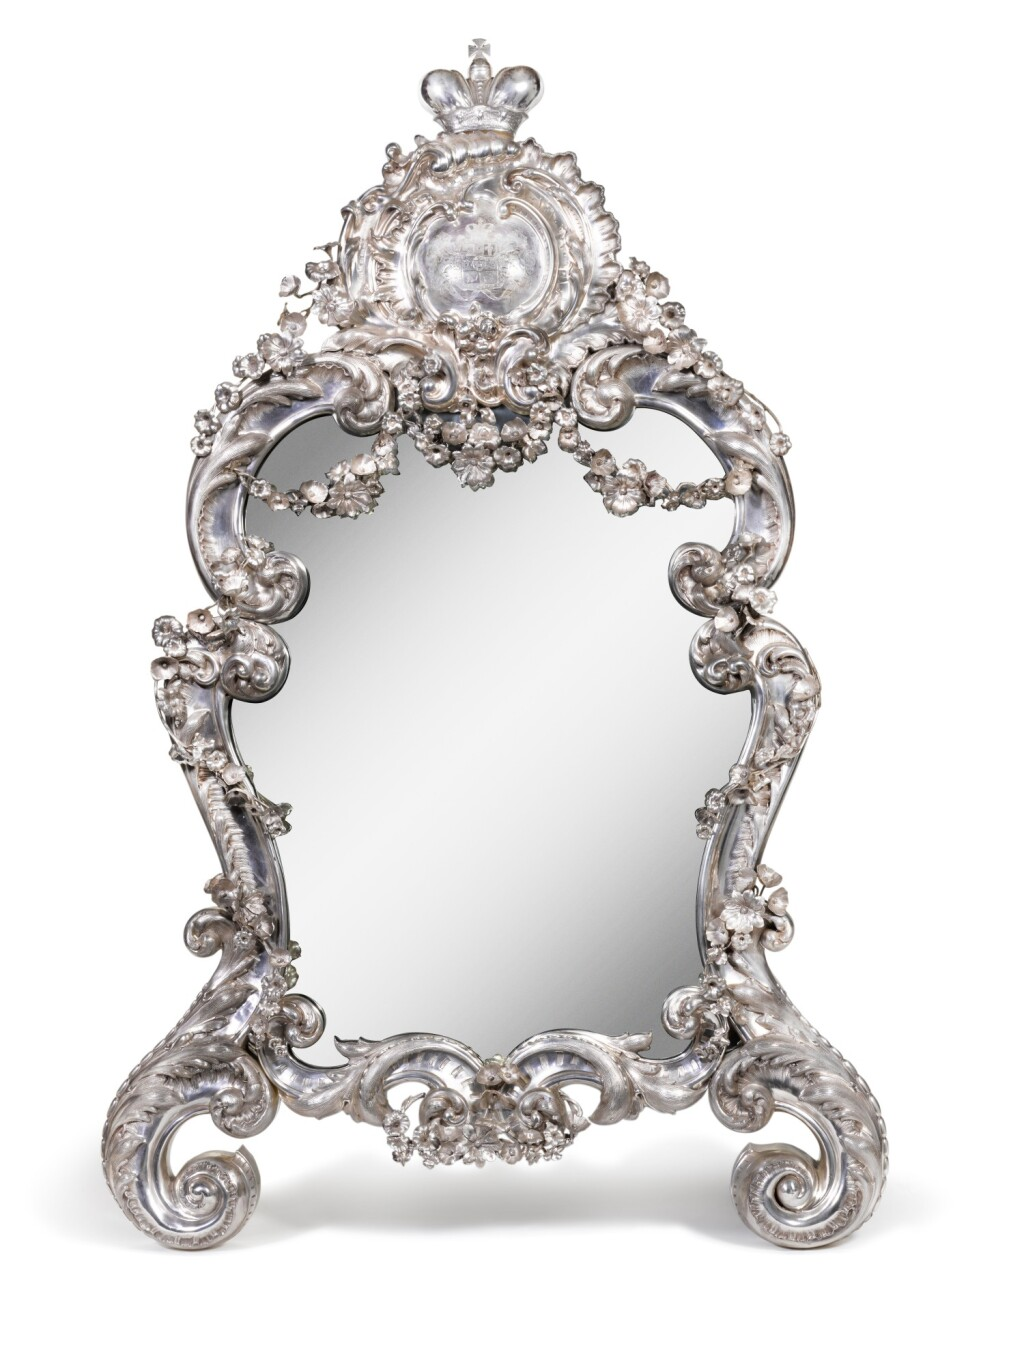 A LARGE AND RARE ROCOCO SILVER MIRROR, JEAN-BAPTISTE VAILLANT, ST PETERSBURG, 1846